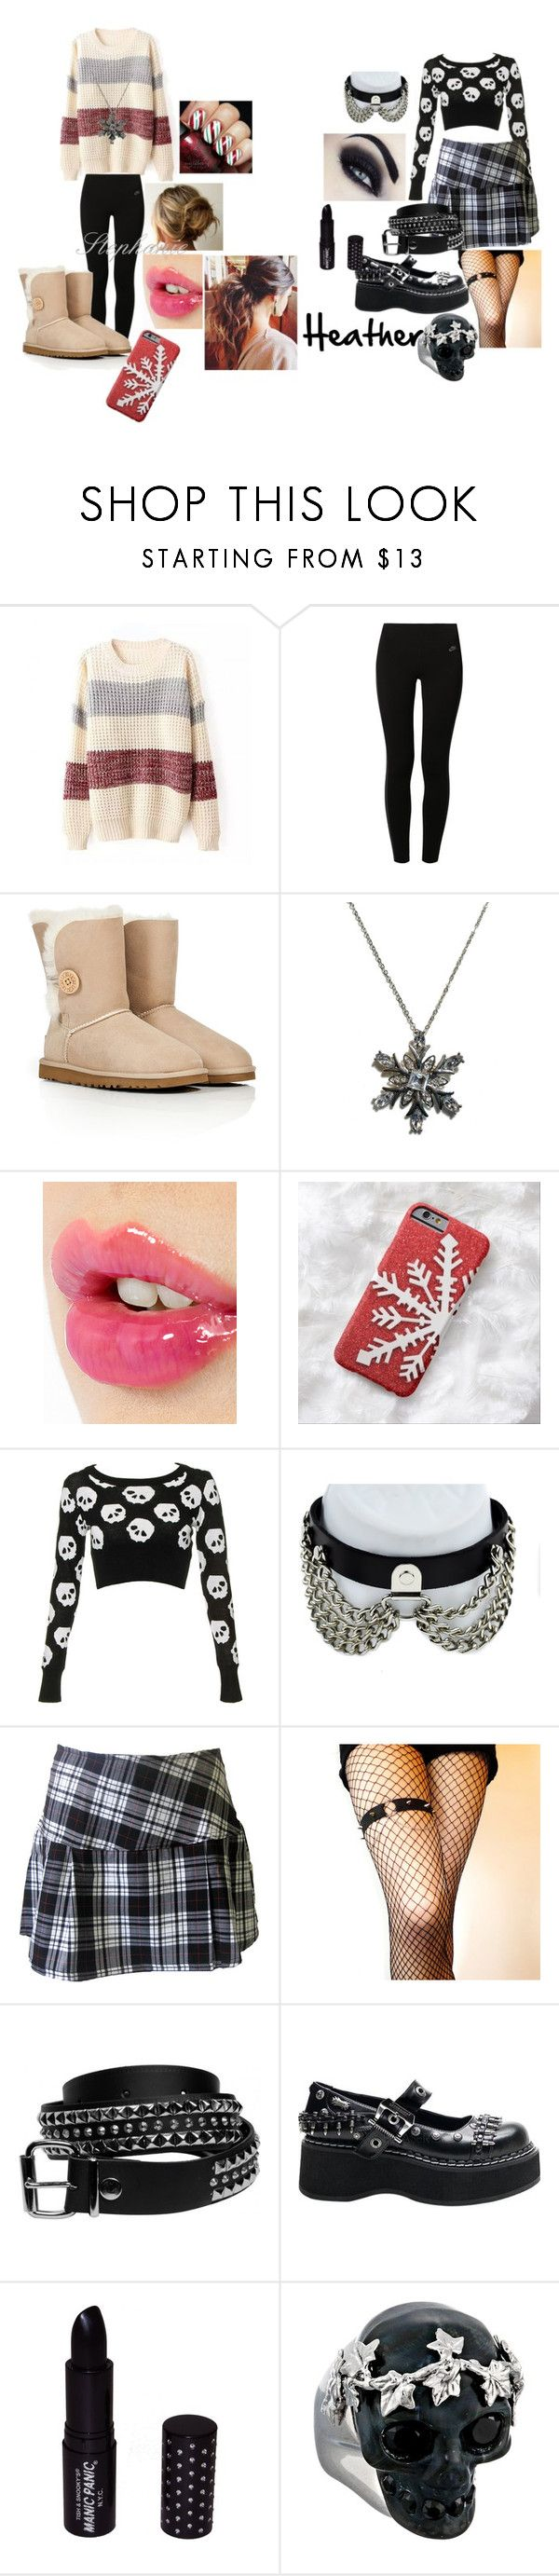 """christmas eve"" by justrin on Polyvore featuring Mode, NIKE, UGG Australia, Charlotte Tilbury, Demonia, Manic Panic NYC und Alexander McQueen"